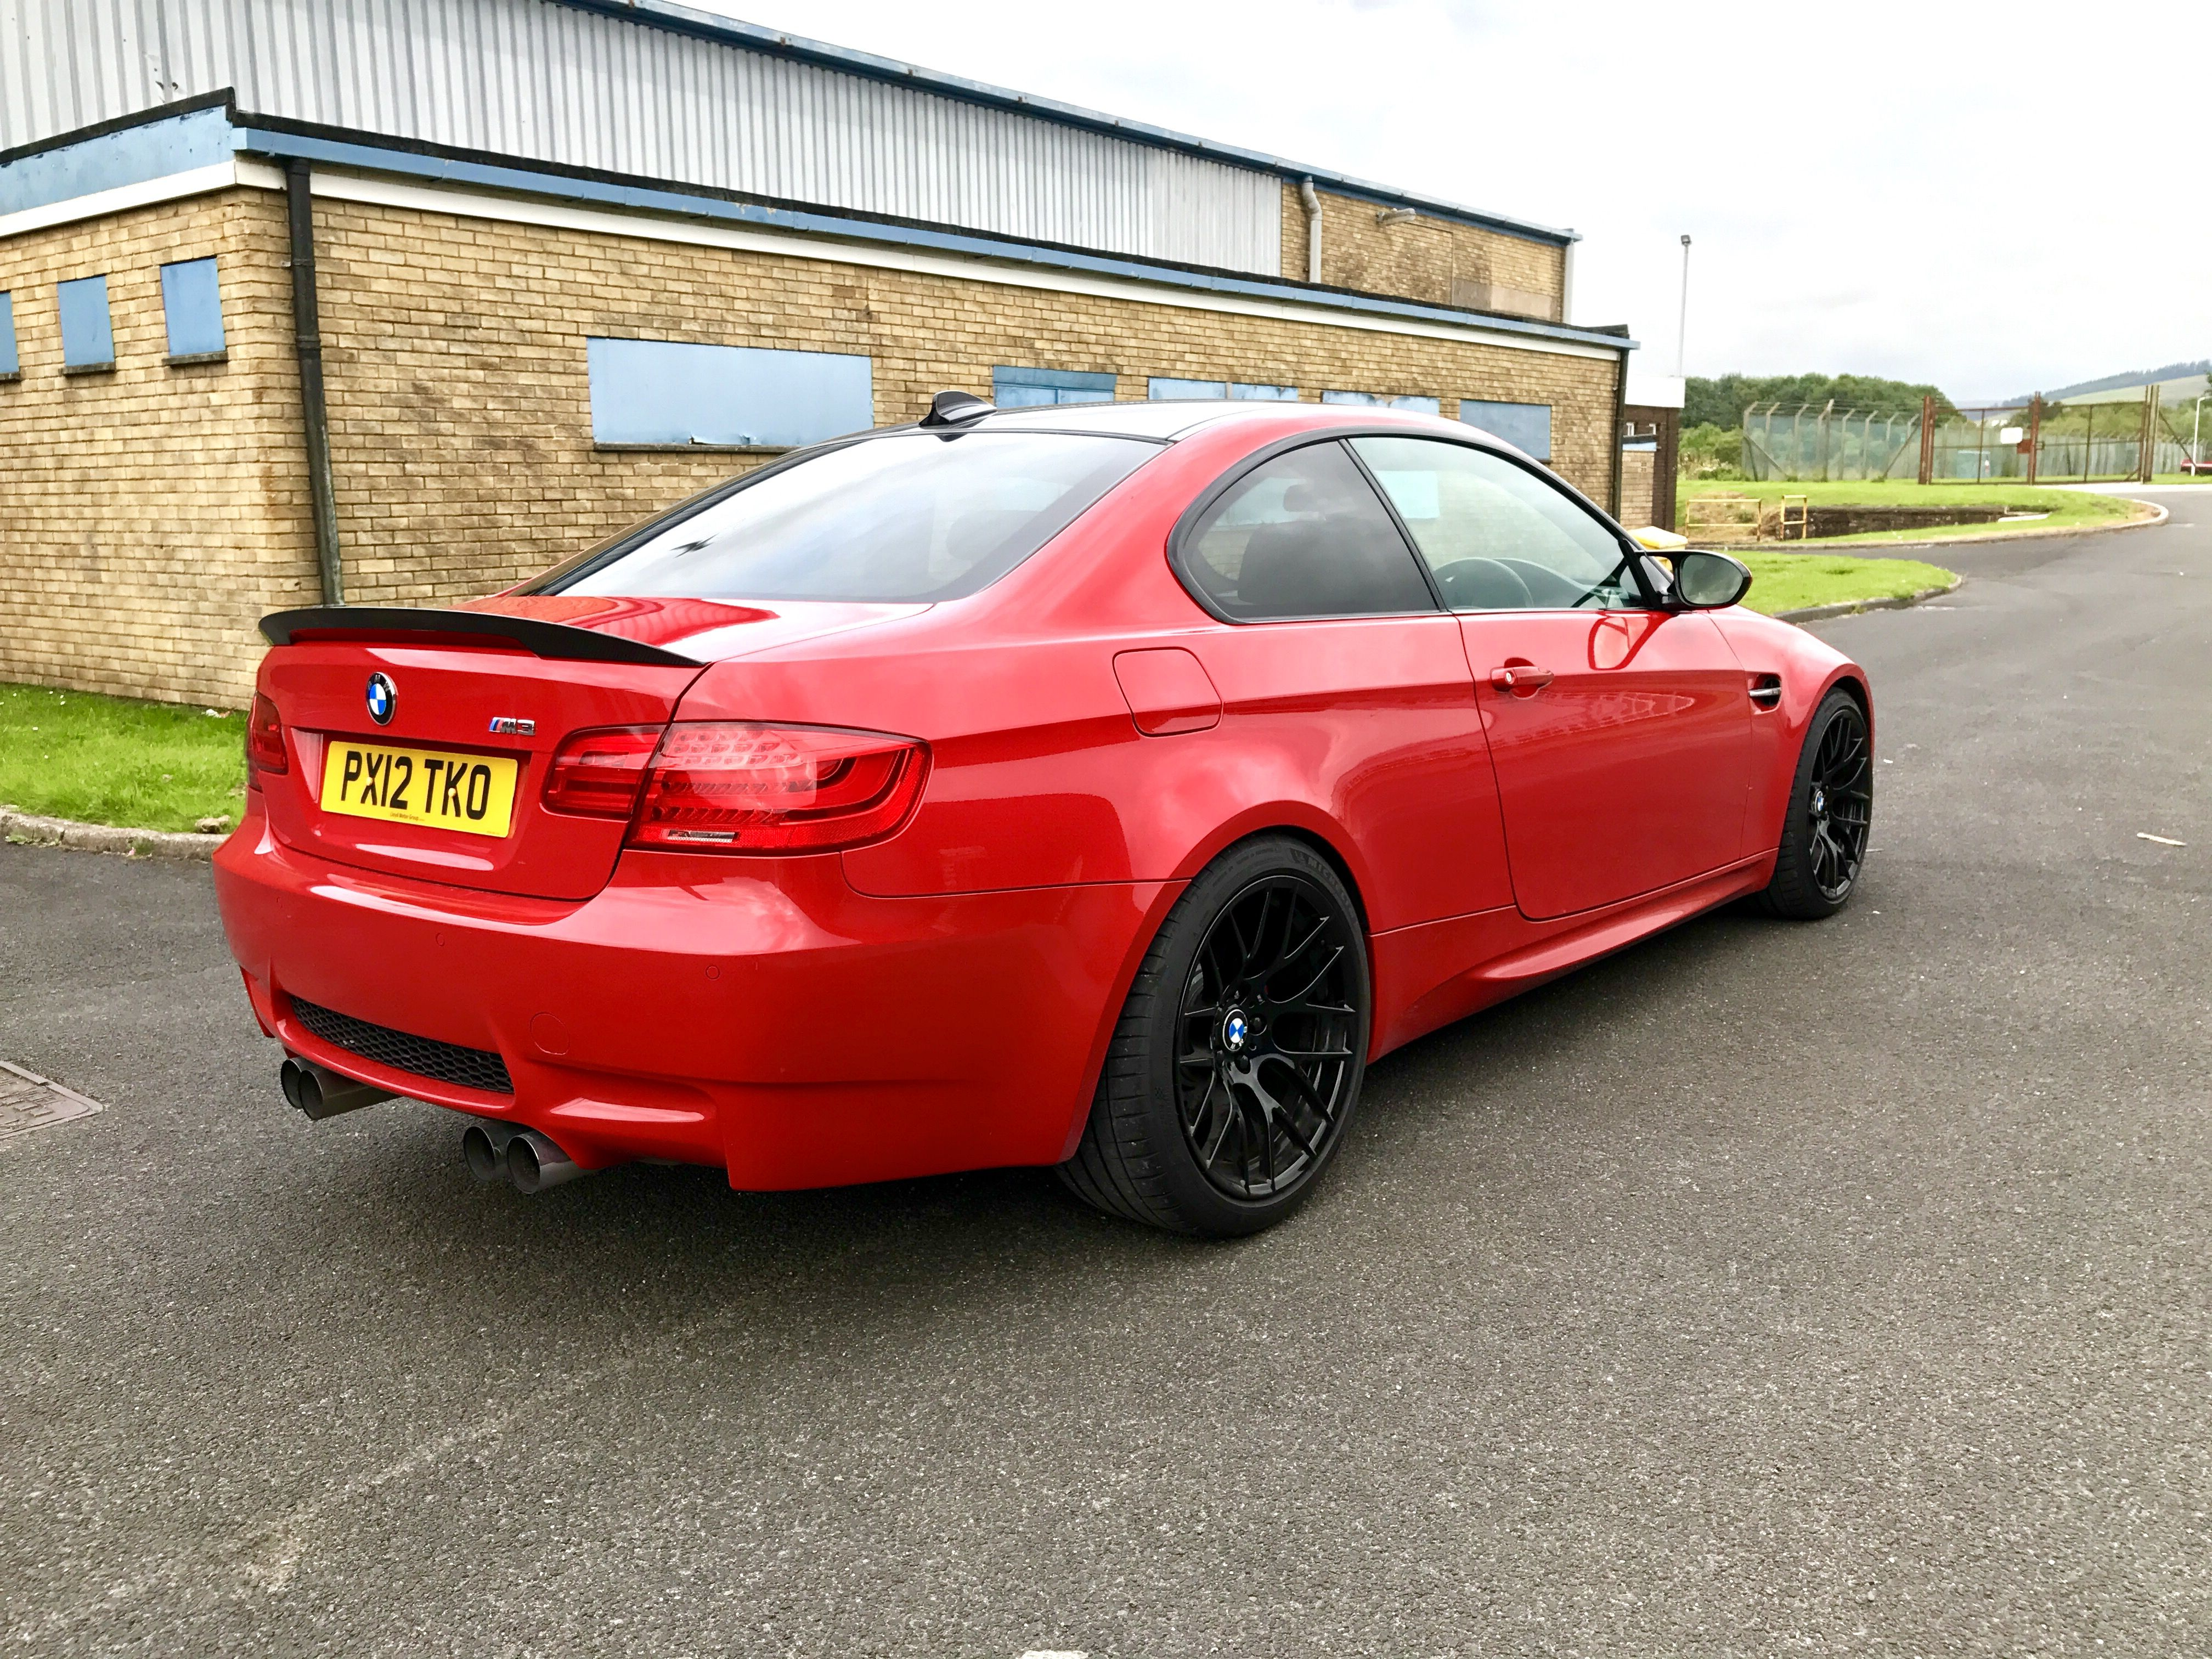 2012 bmw e92 m3 individual japan red 1 of 37 competition pack edc [ 4032 x 3024 Pixel ]